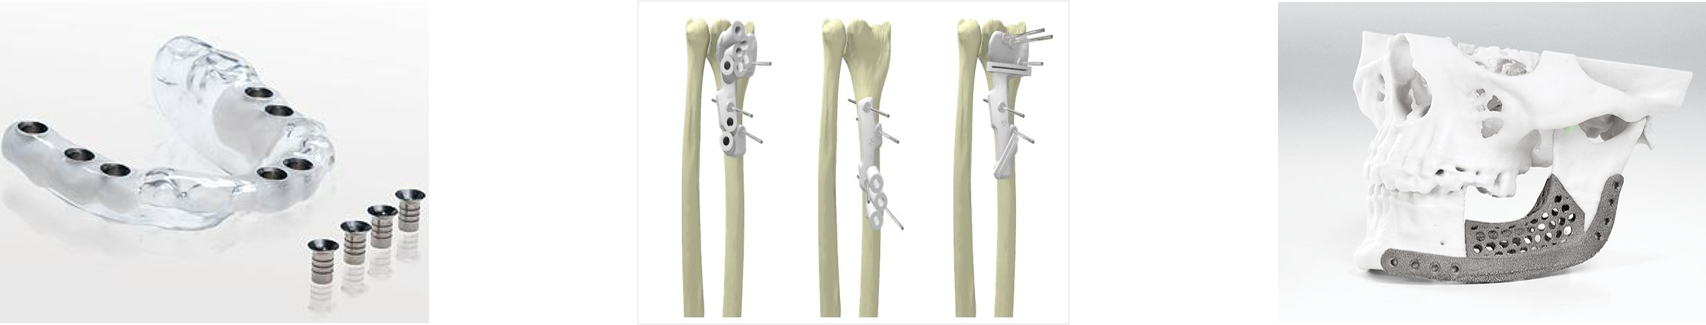 3d printed surgical guides 2